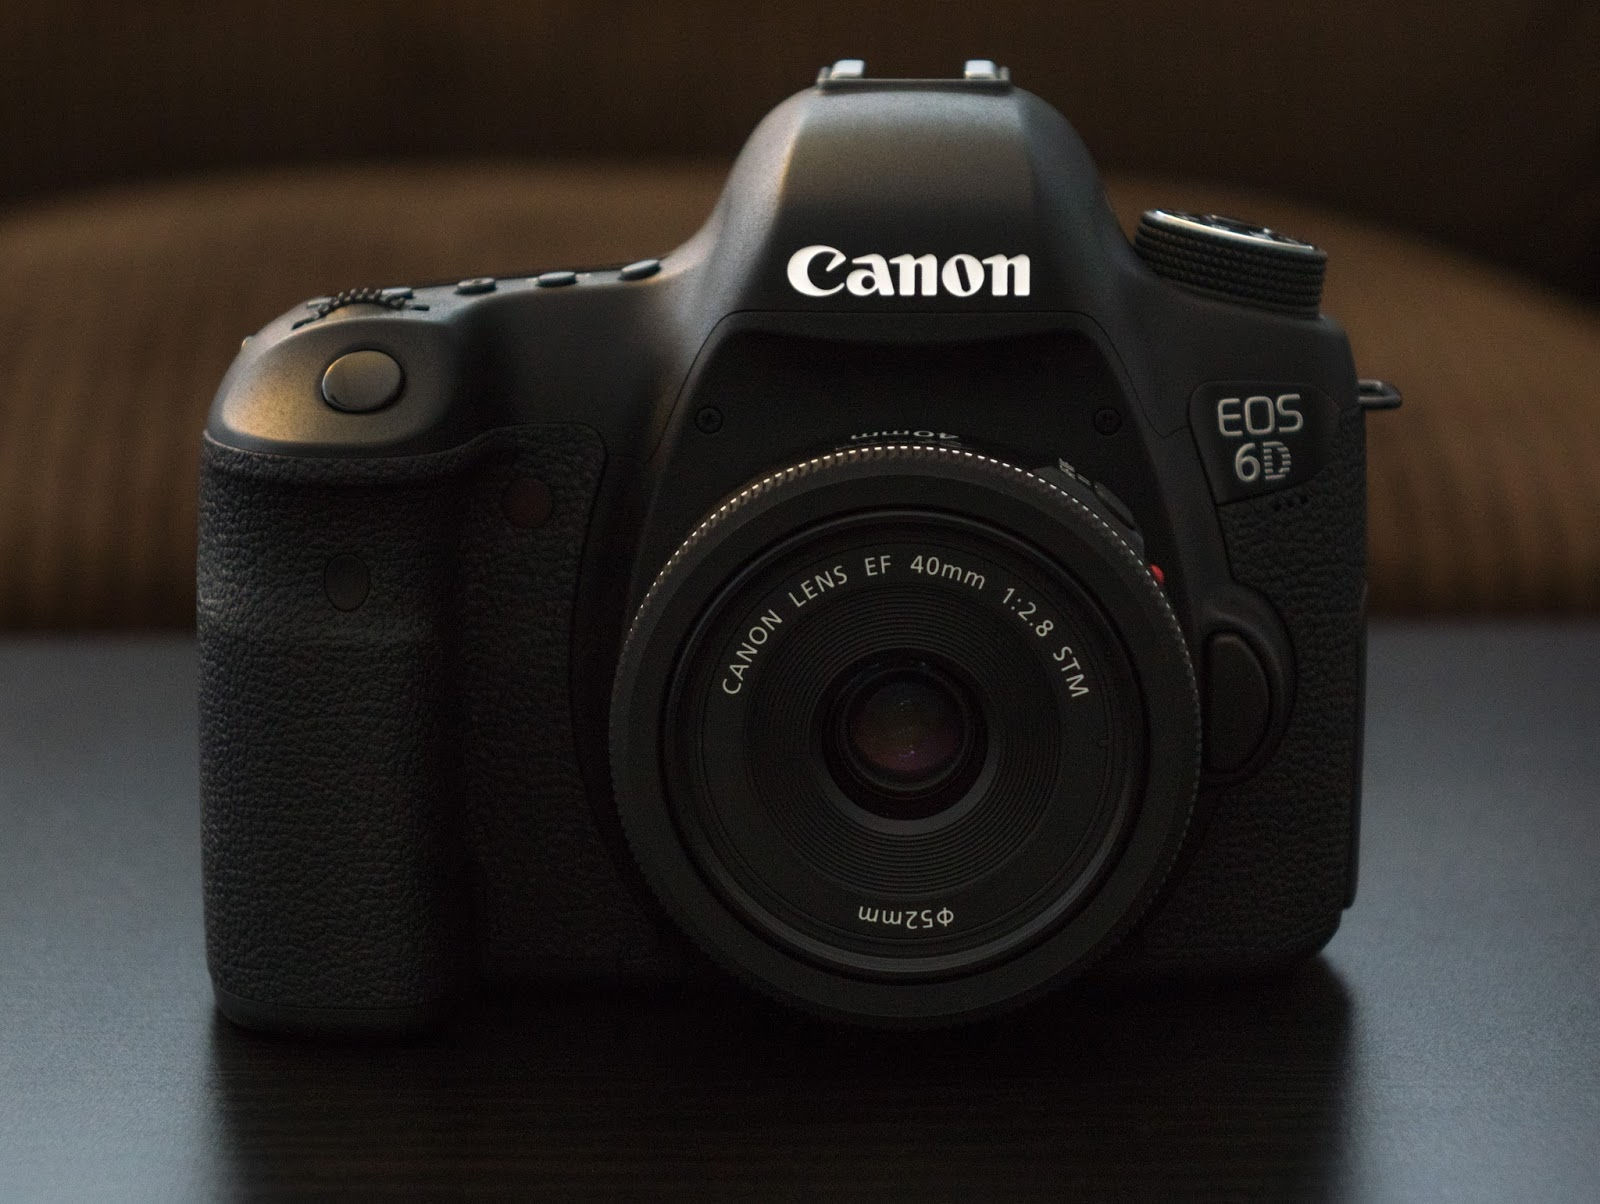 photographic central the canon eos 6d review. Black Bedroom Furniture Sets. Home Design Ideas